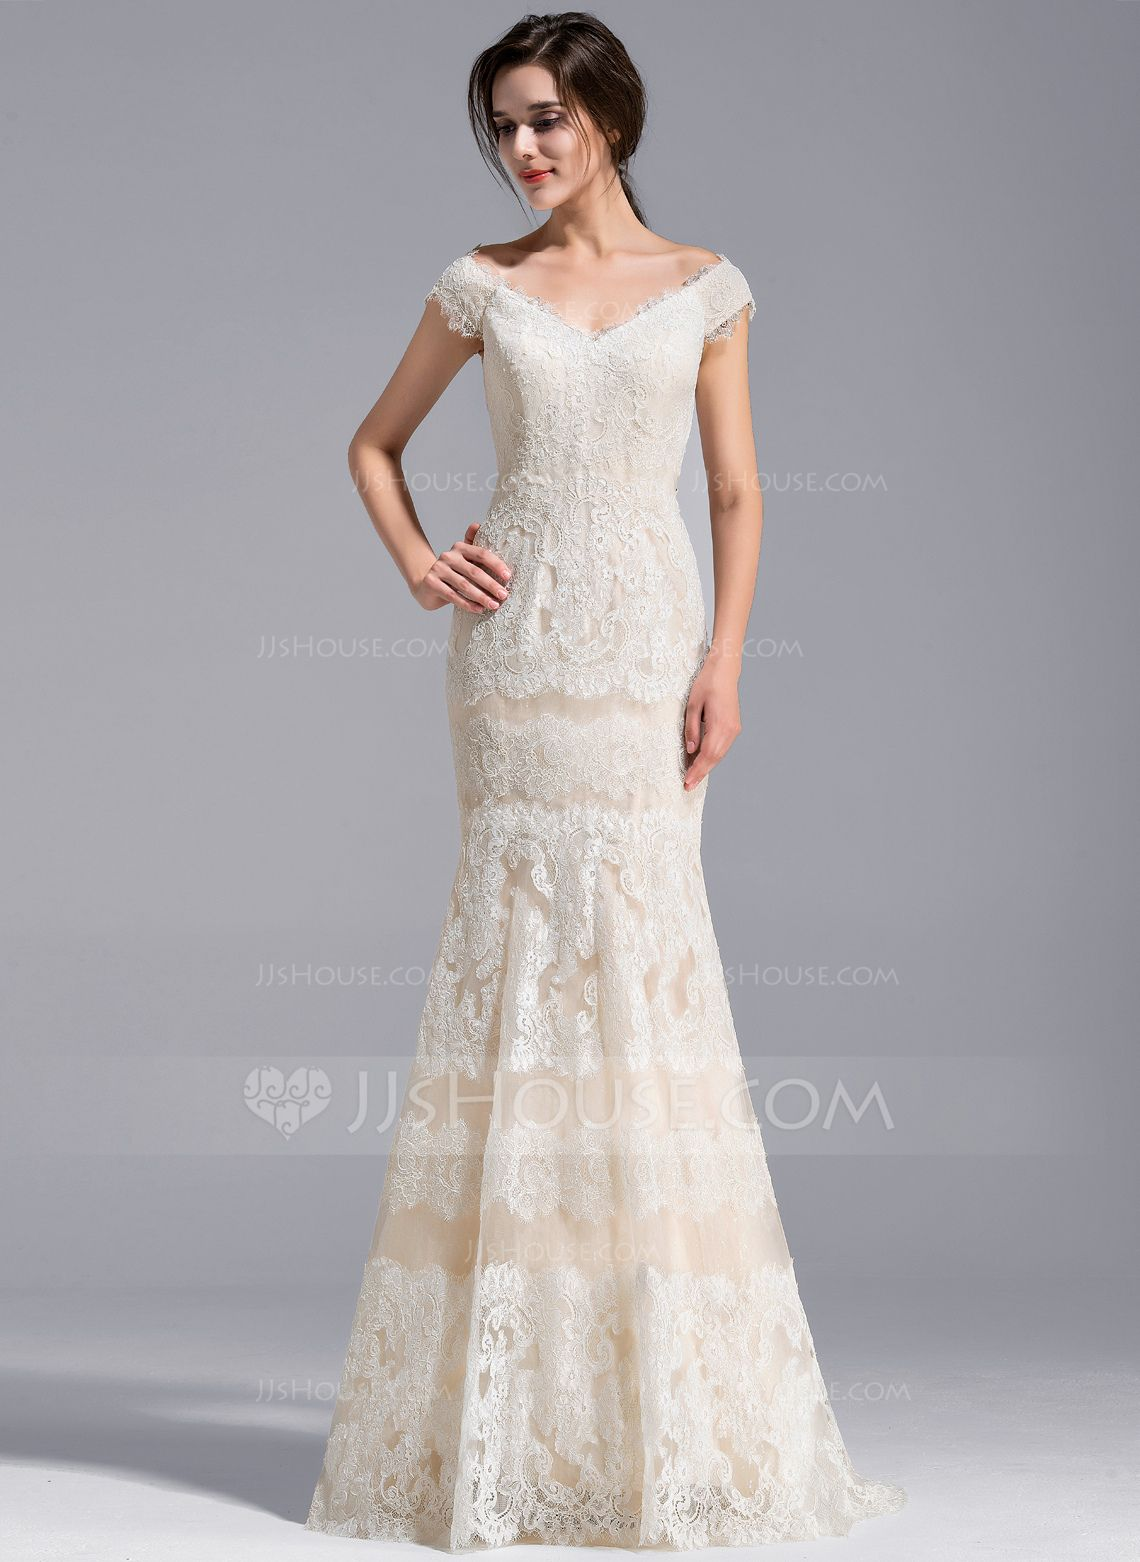 no train wedding dress plus size dresses for wedding guests